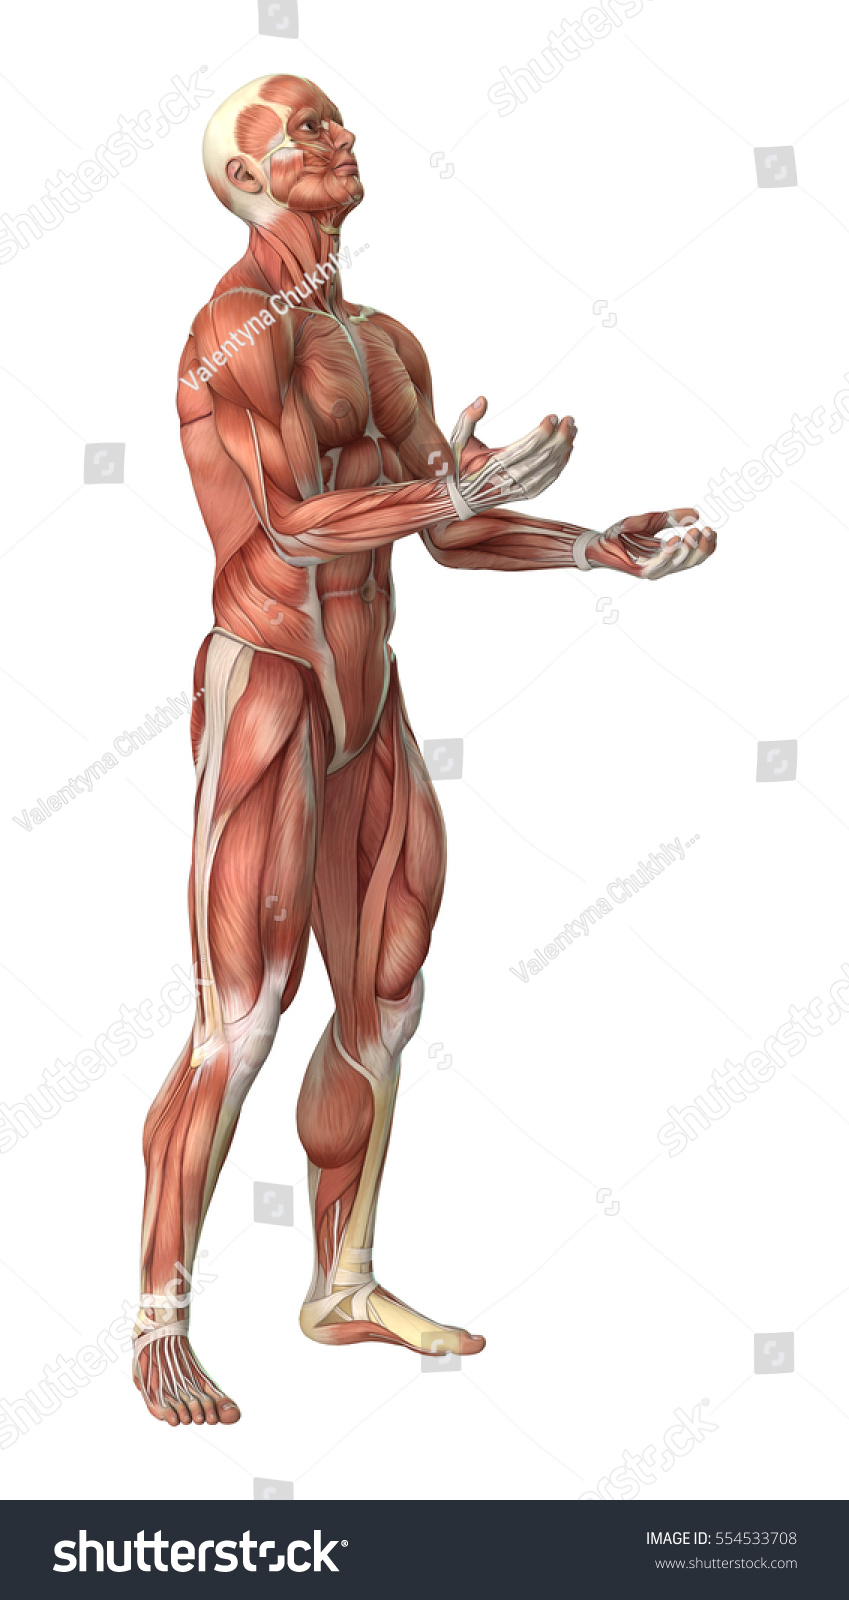 3 D Rendering Male Anatomy Figure Muscles Stock Illustration